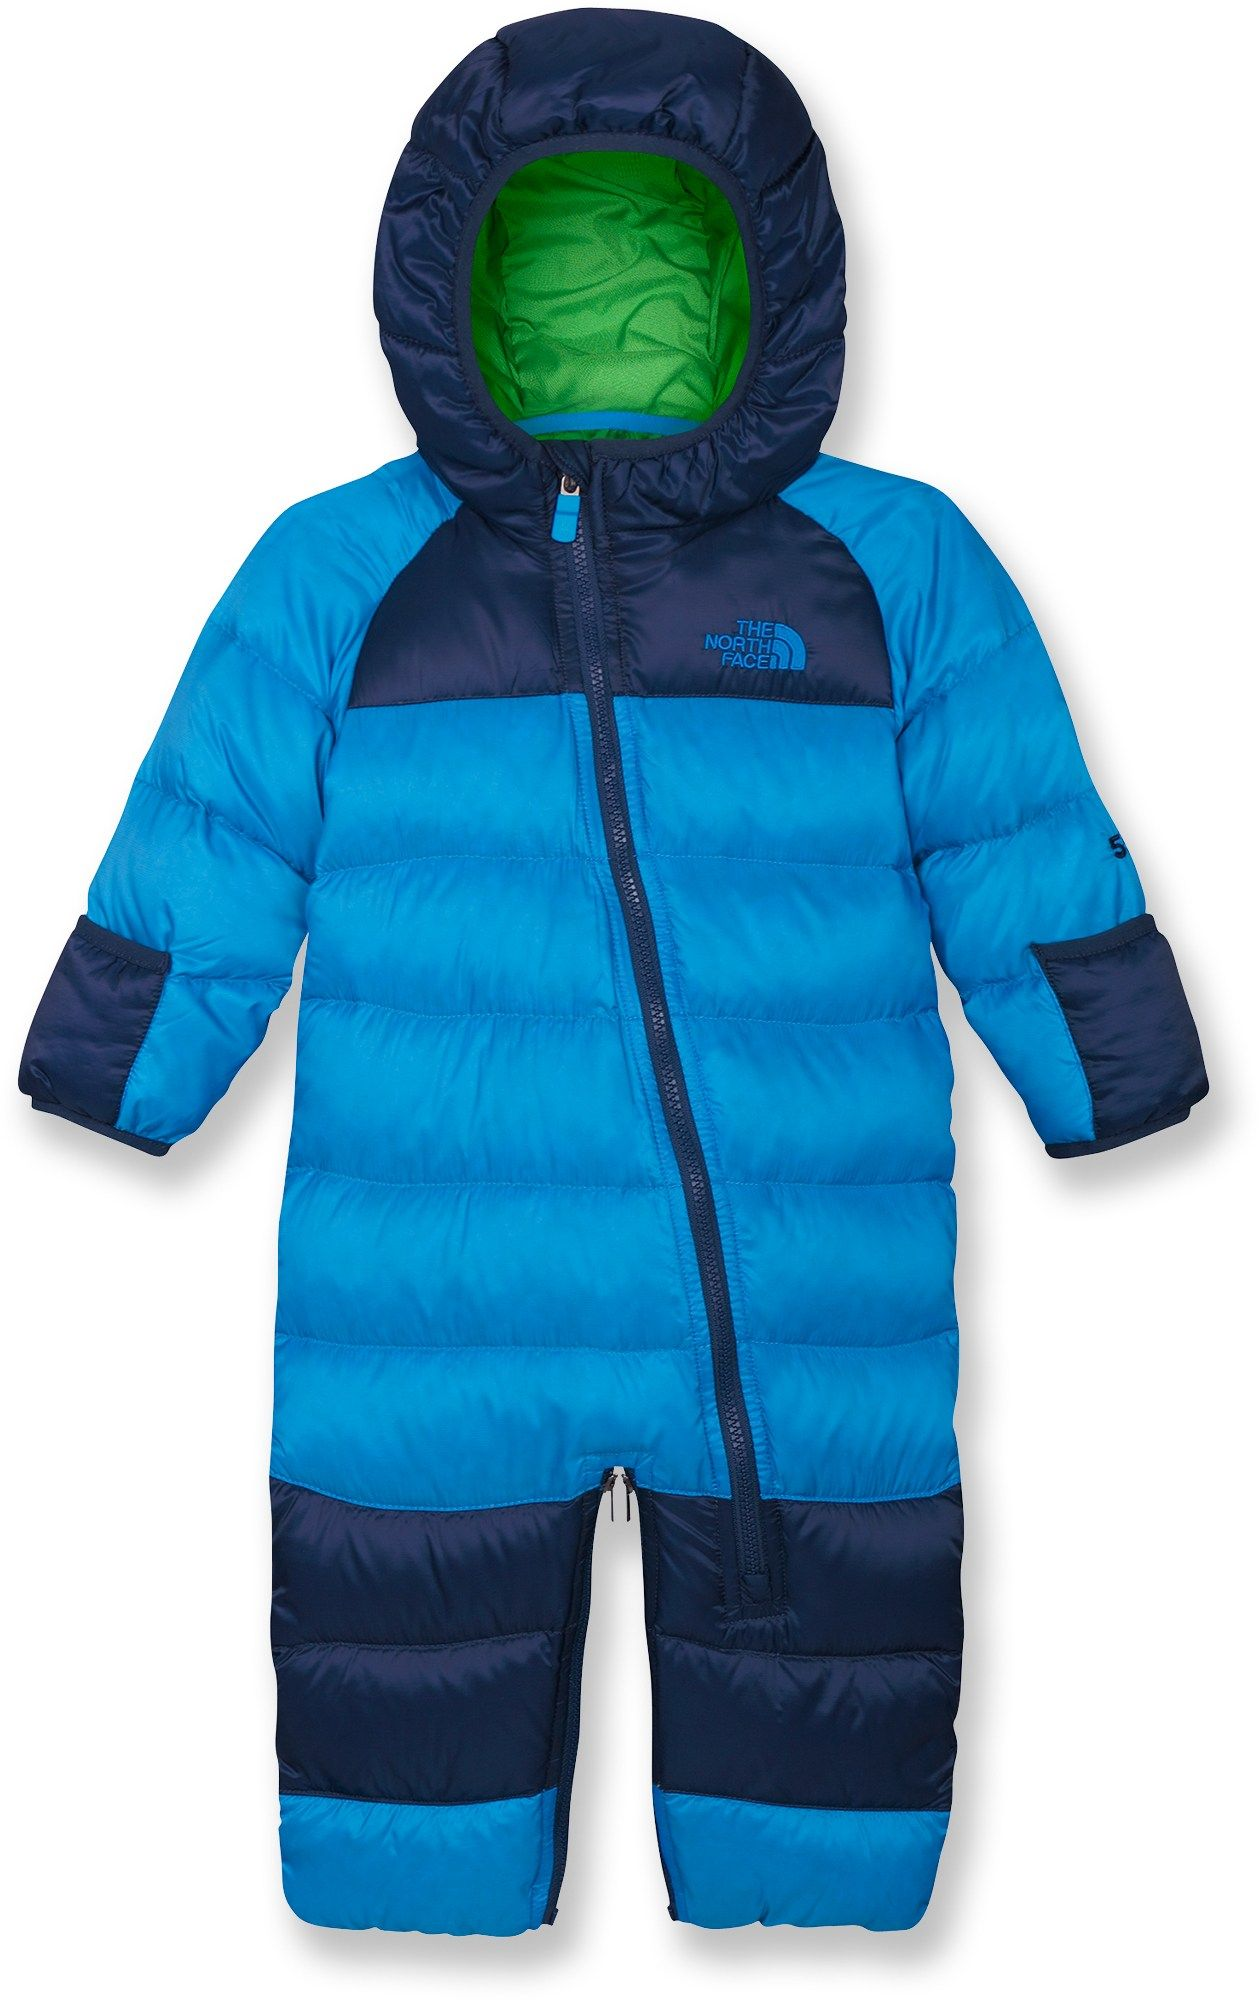 1e3a55f1e Ahhhh! North Face snow suit - must have! | For Liam | Baby in snow ...